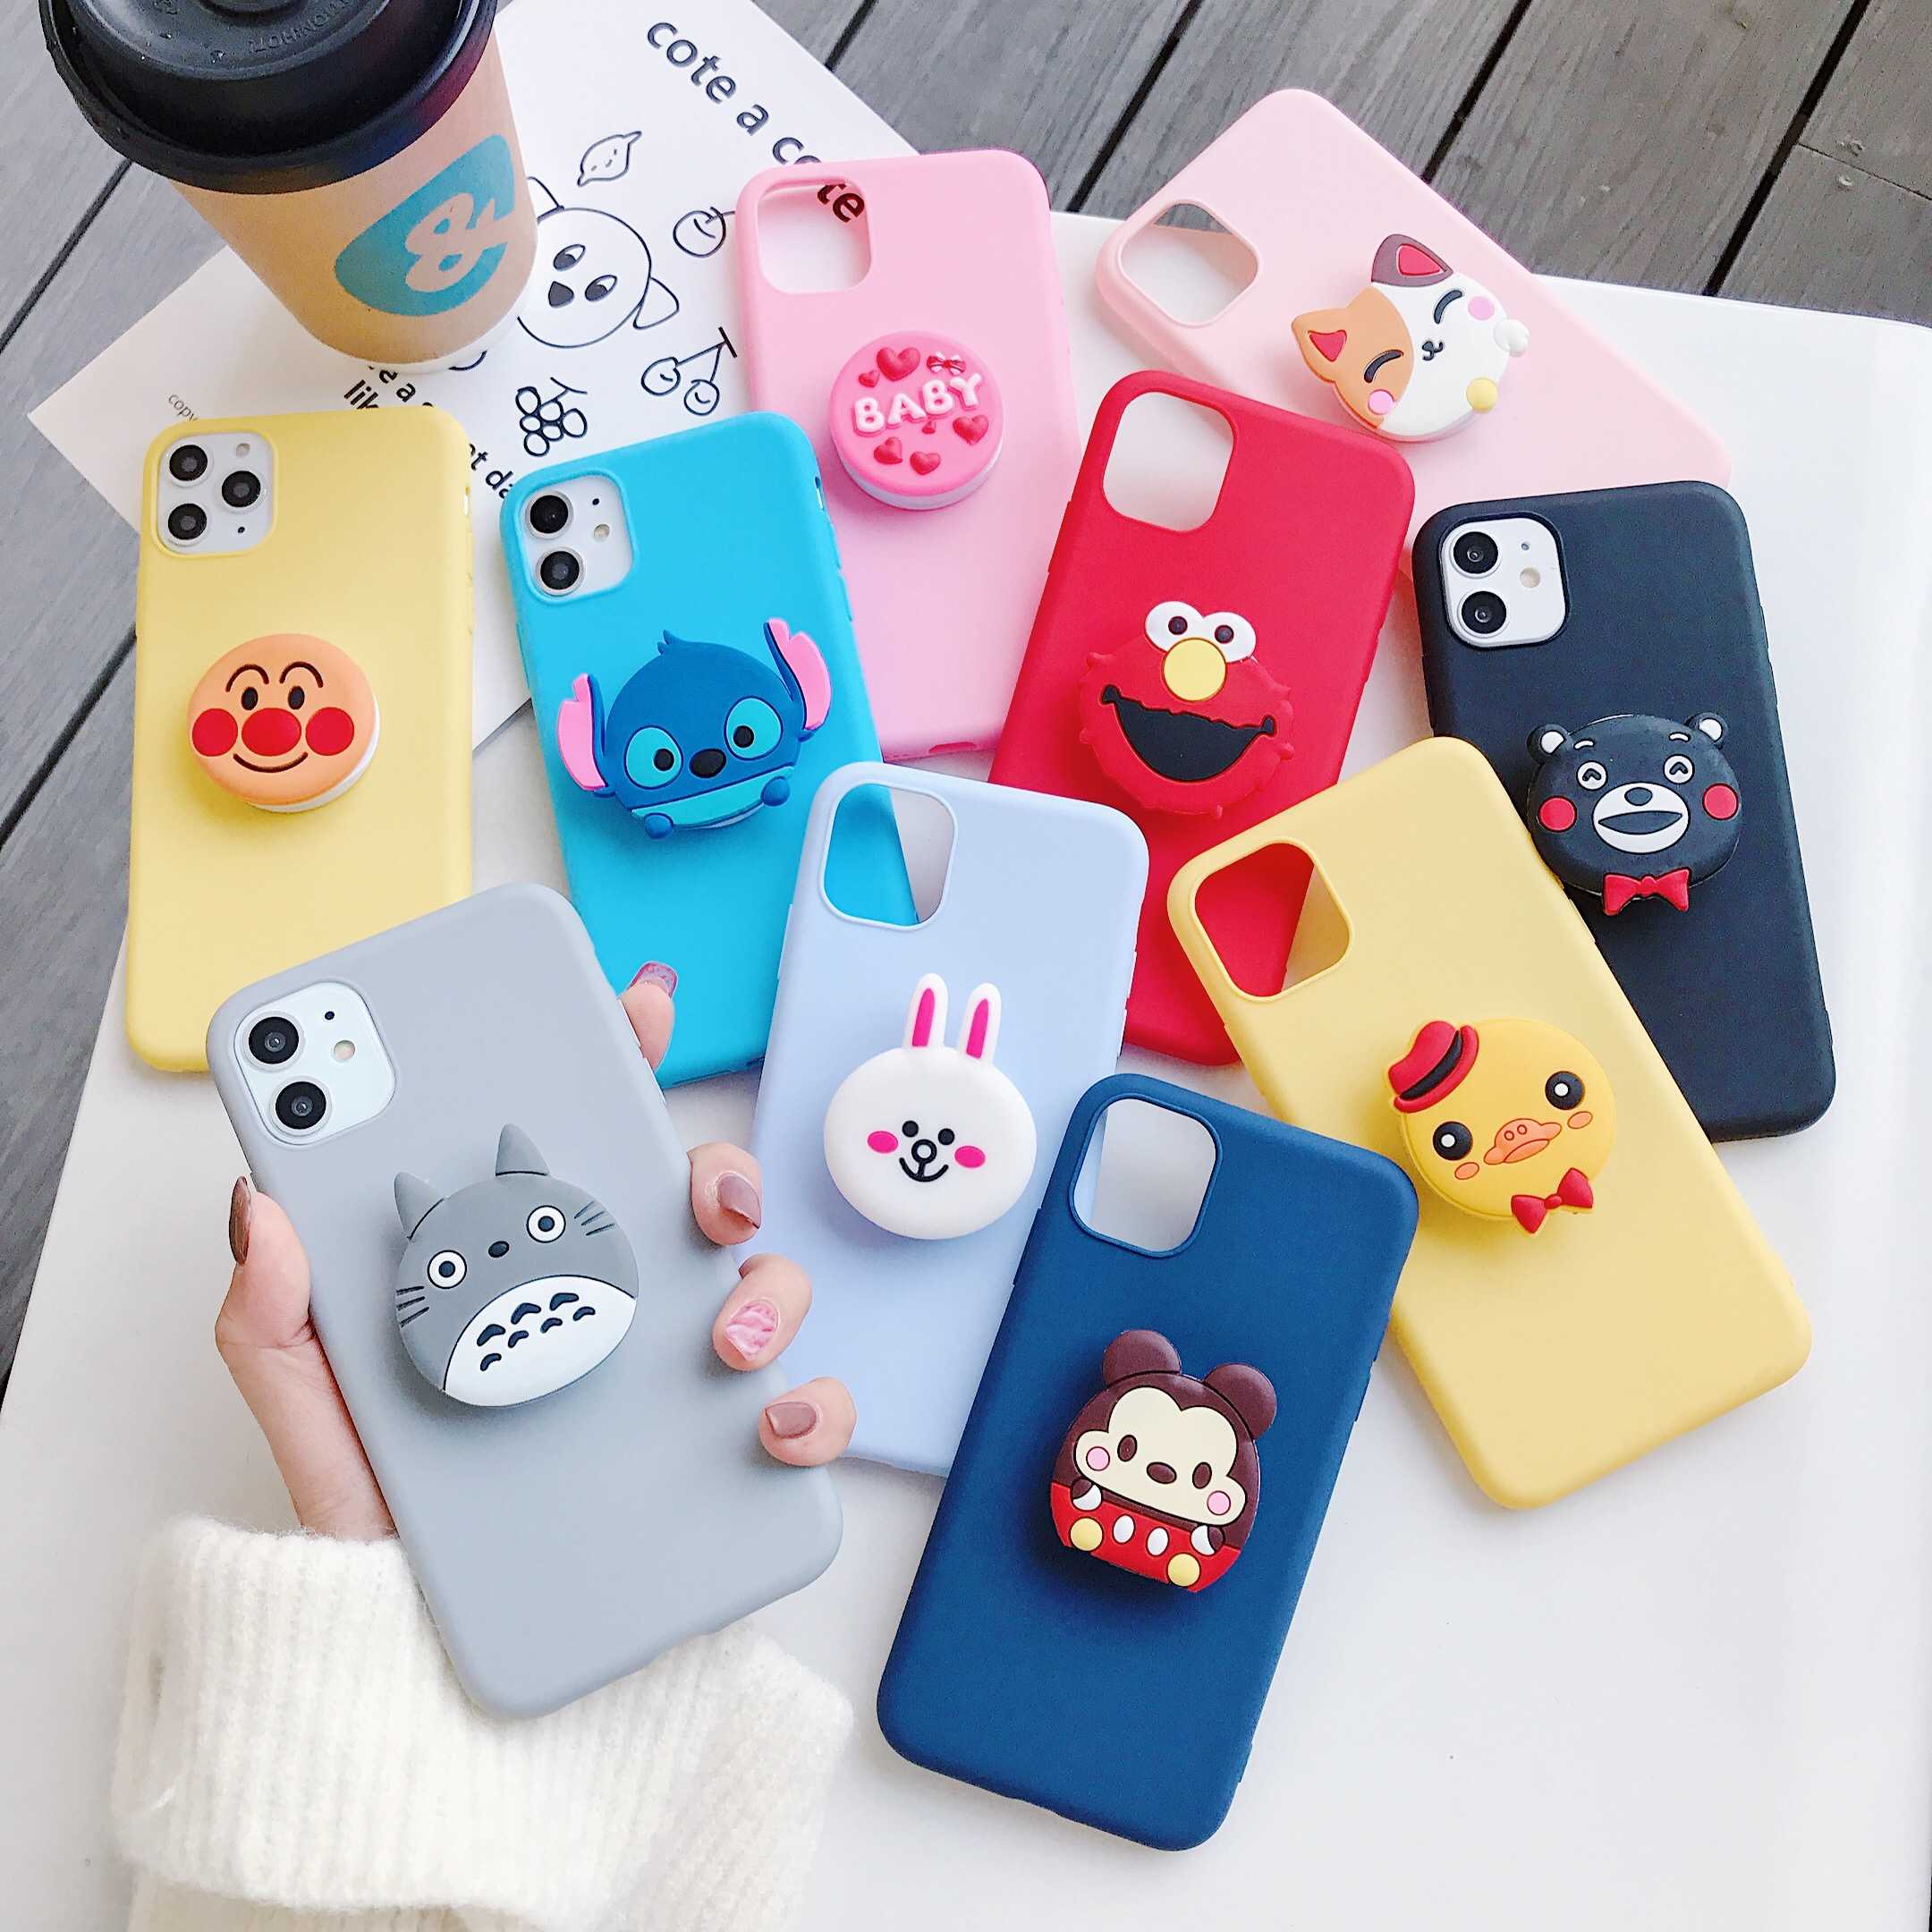 <font><b>3D</b></font> silicone cartoon phone holder case for <font><b>samsung</b></font> galaxy j8 j7 pro j6 <font><b>j5</b></font> j4 a6 a8 plus 2018 <font><b>2017</b></font> 2016 2015 cute stand back cover image